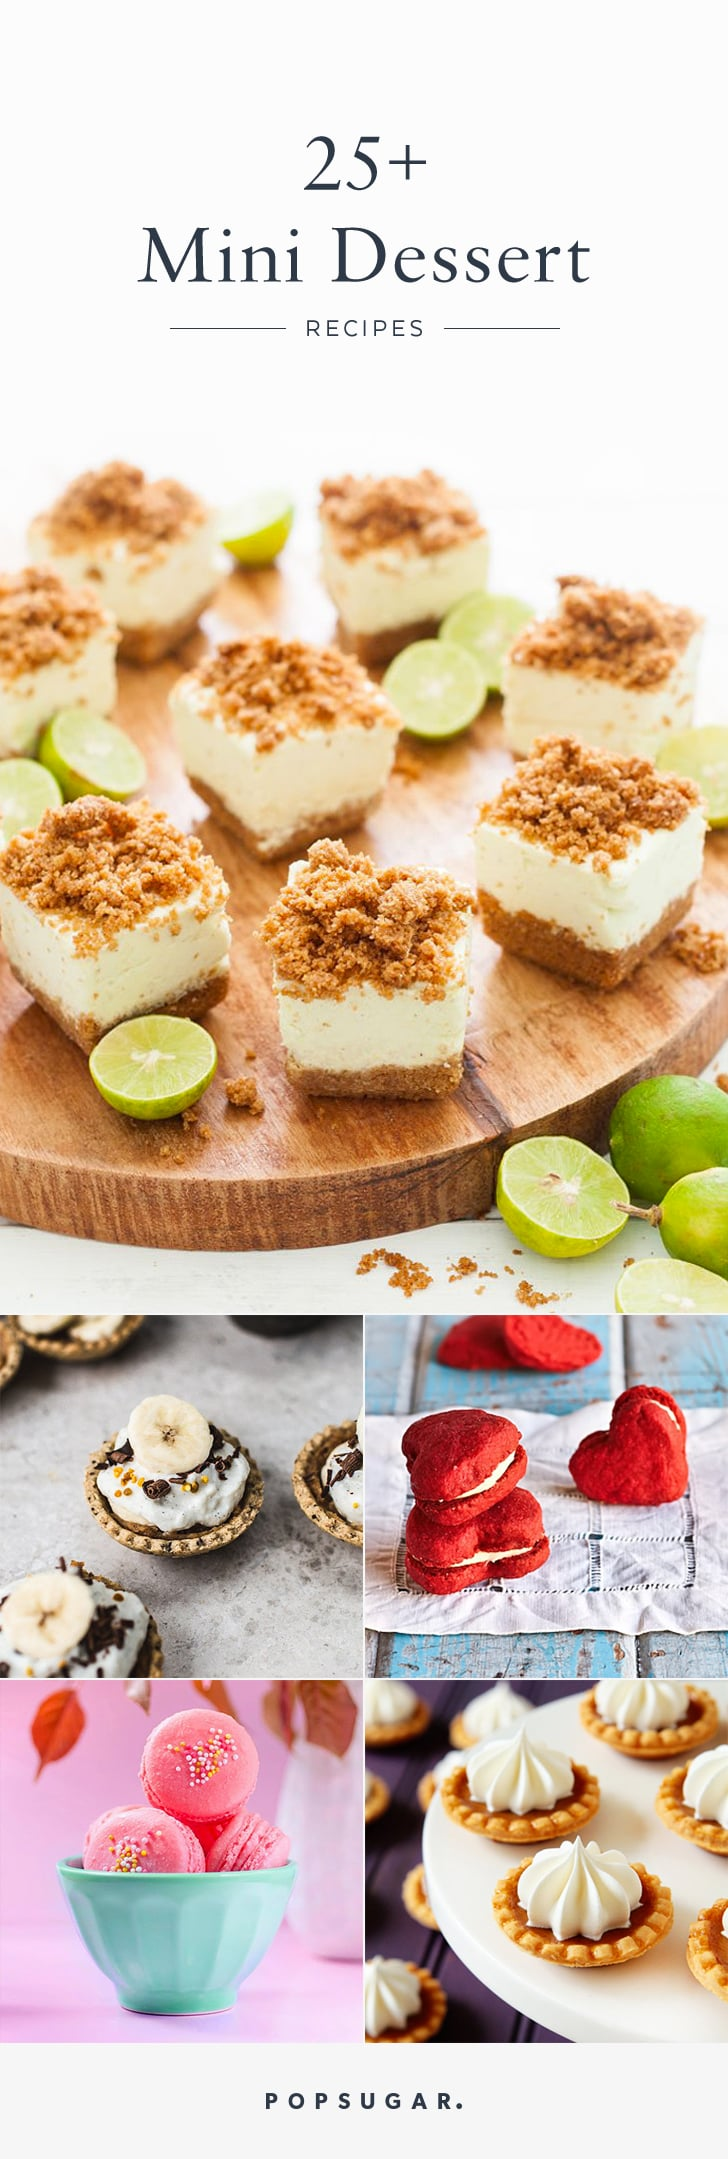 Mini Dessert Recipes  POPSUGAR Food